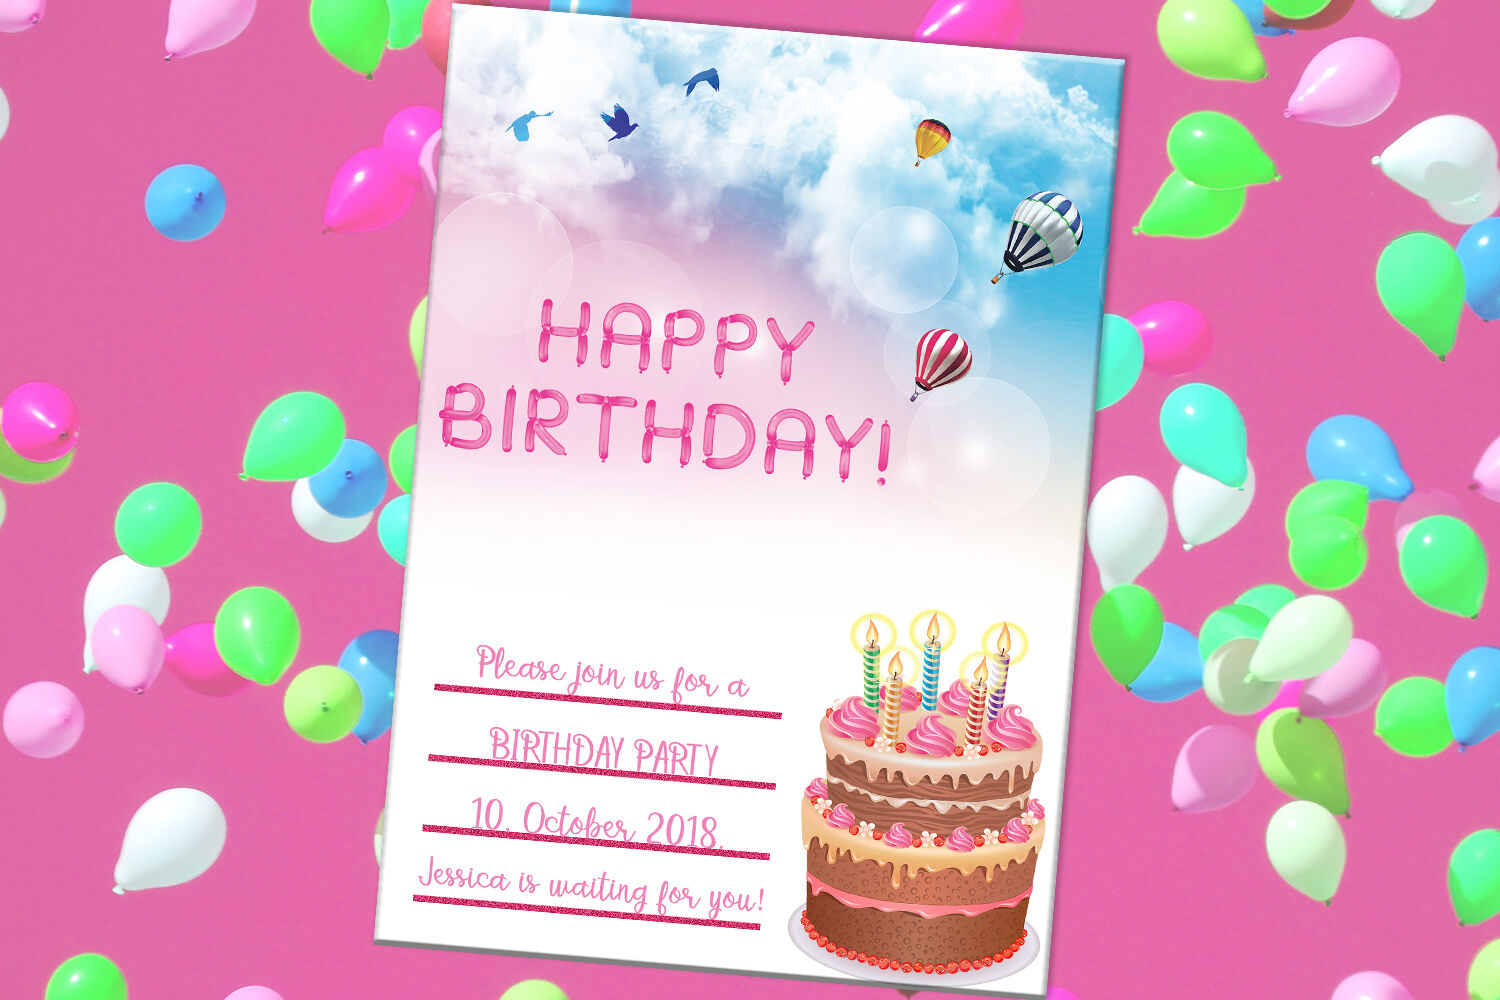 Astonishing Happy Birthday Card Party Card Digital Download By Funny Birthday Cards Online Elaedamsfinfo